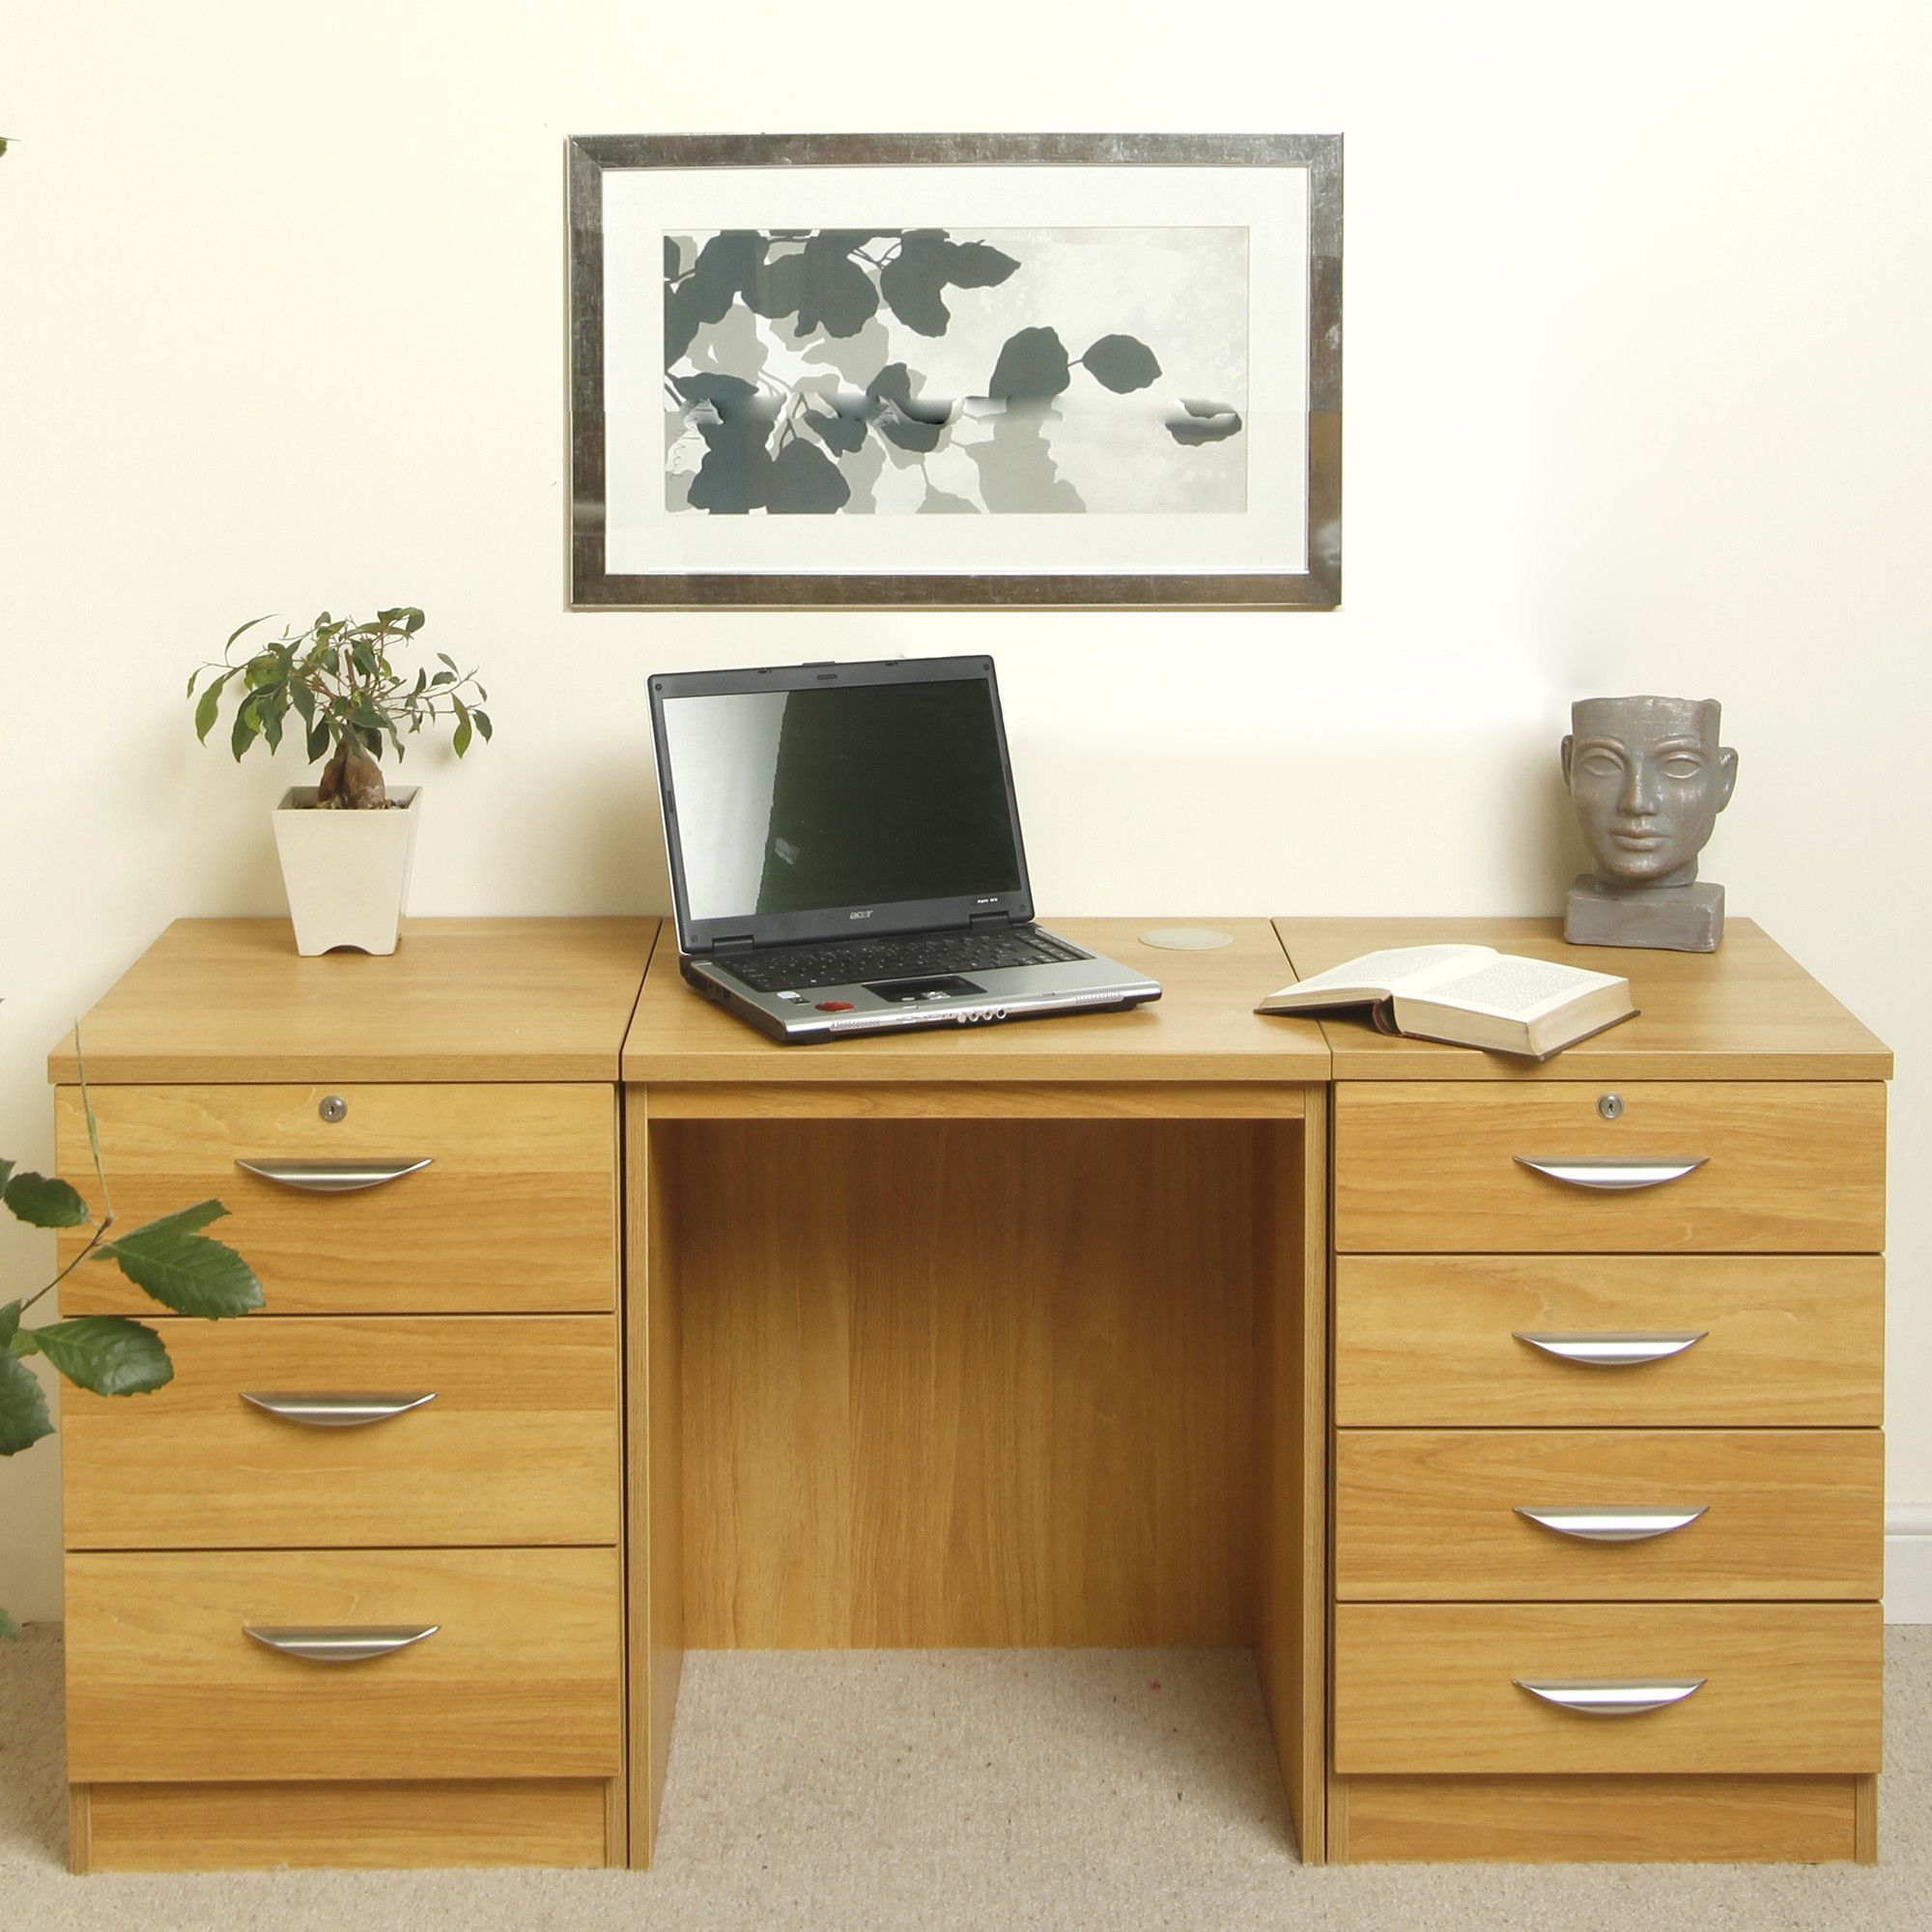 Enduro Home Office Desk / Workstation with Two Pedestal Units - Walnut at Tescos Direct